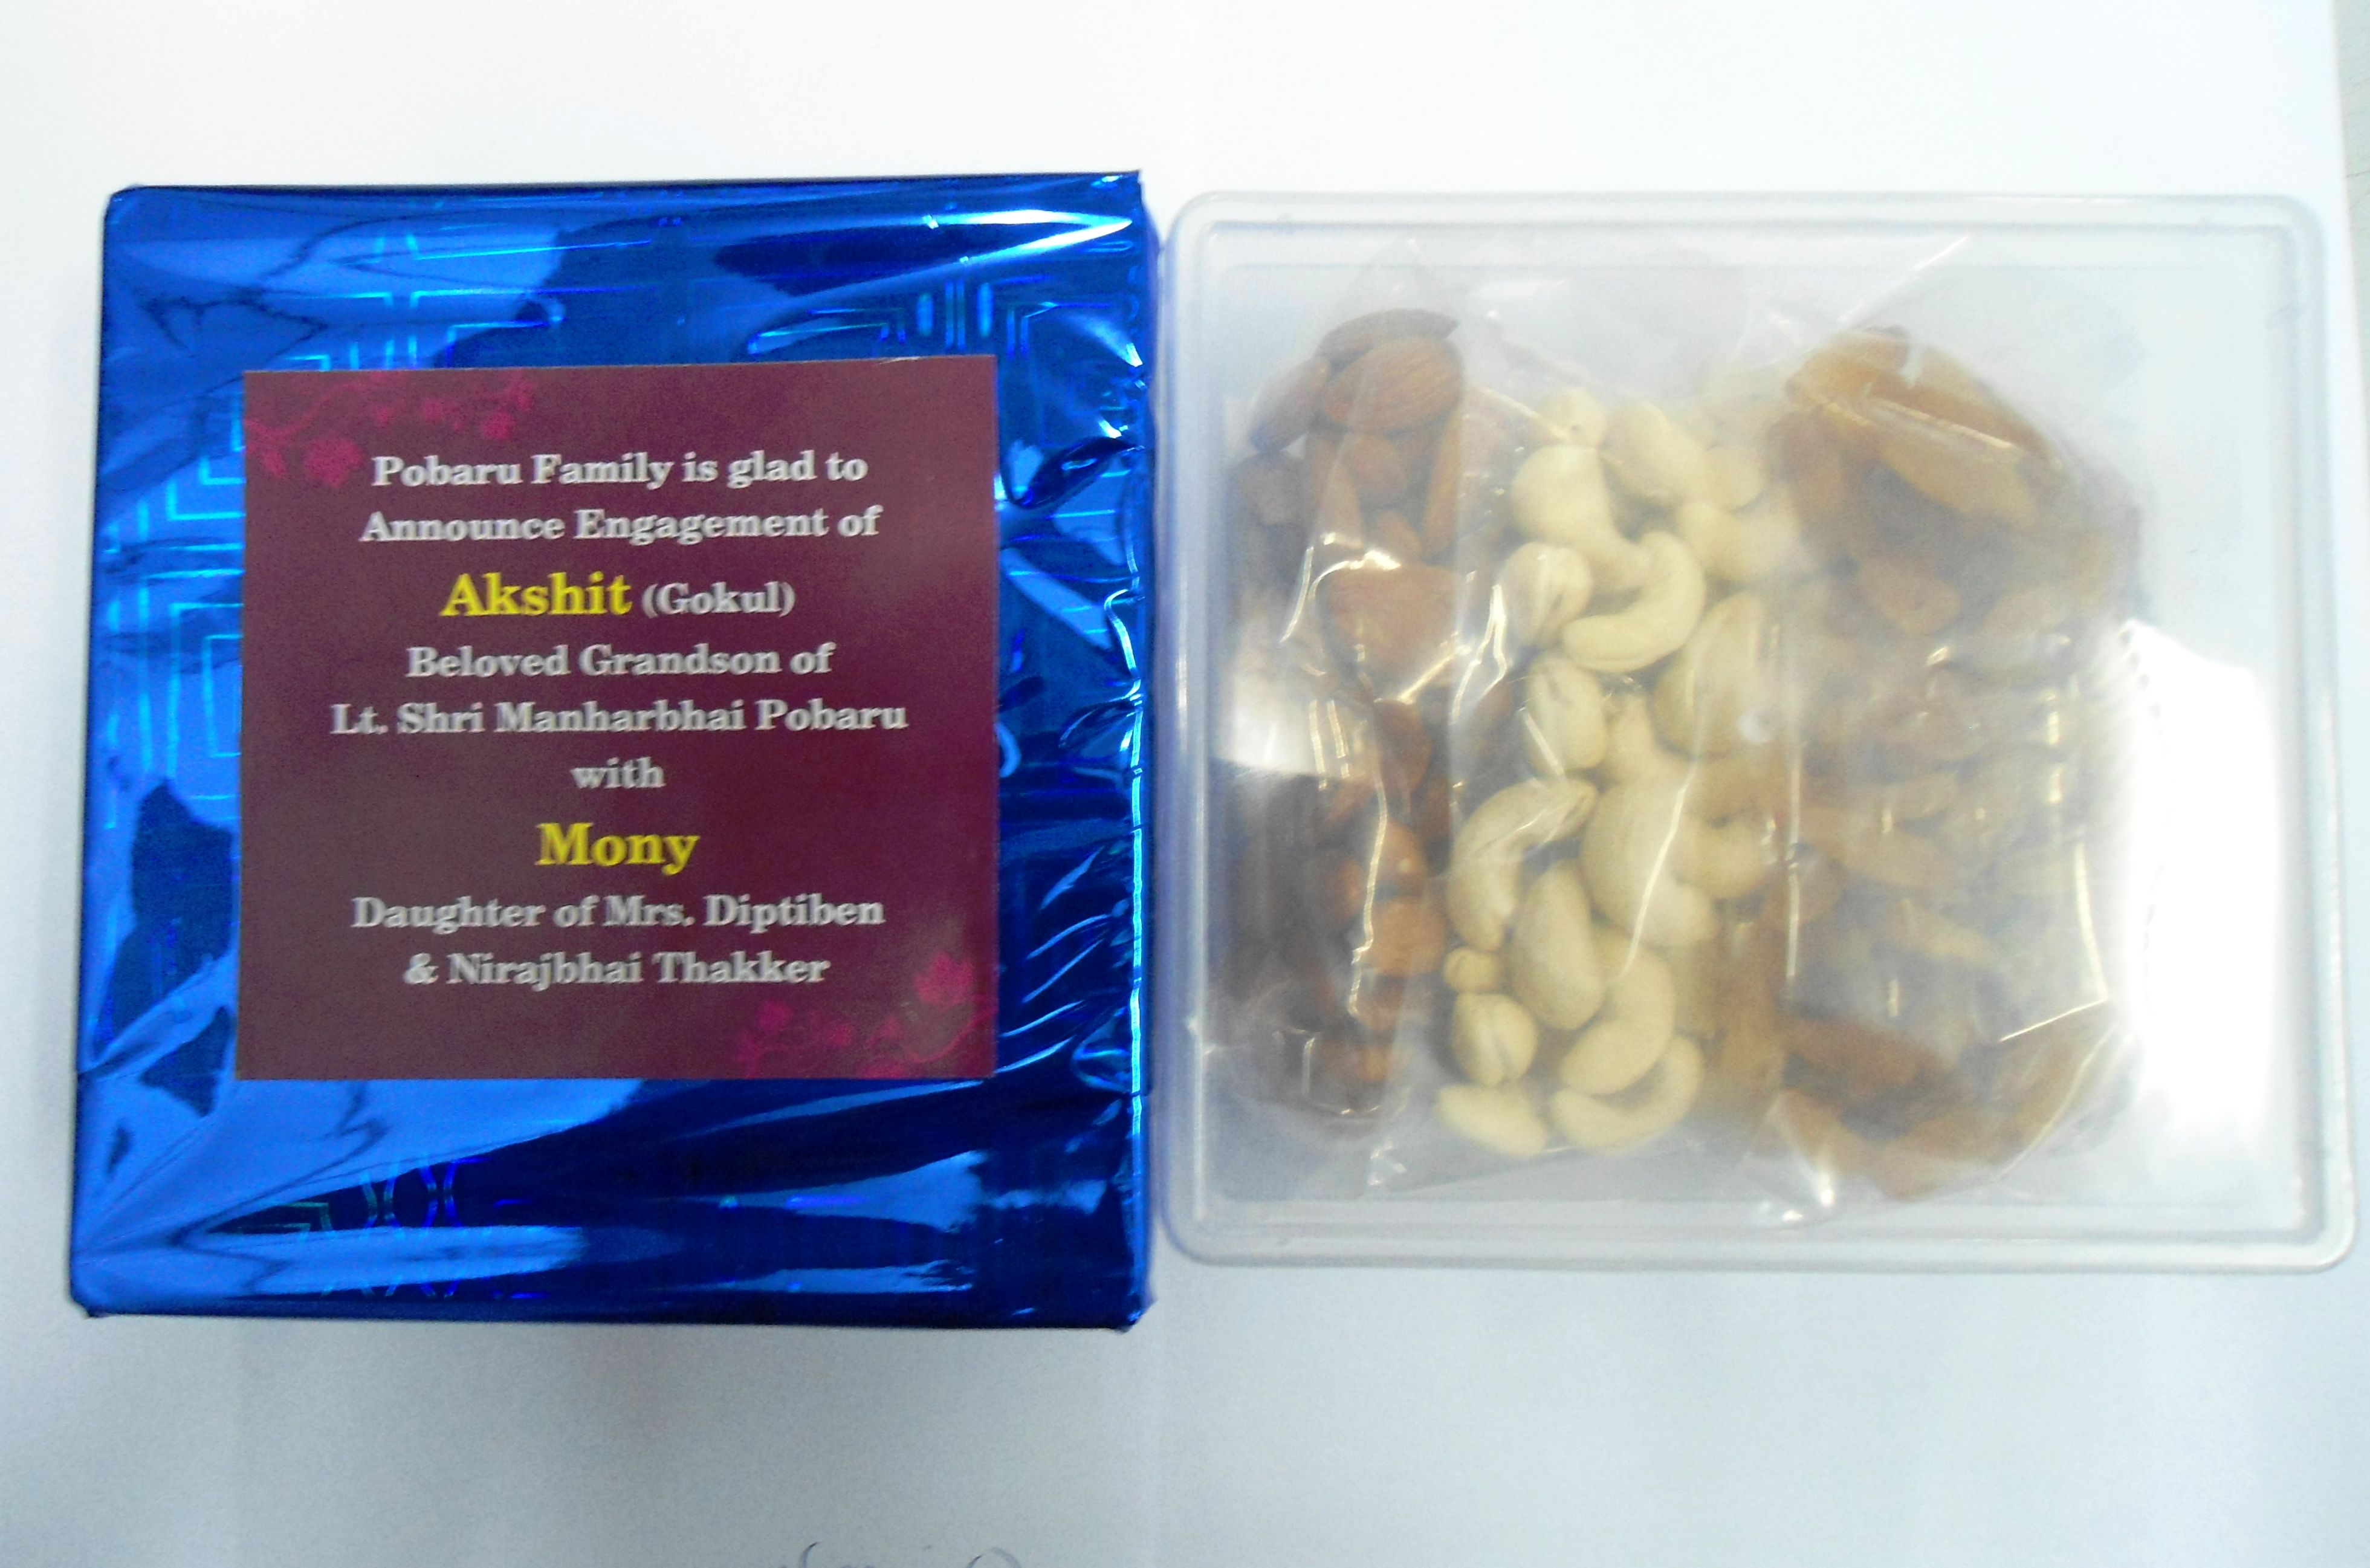 We supply customized dry fruits gift boxes for various requirement in bulk. Qty may vary as per budget. Minimum order qty 100 pc. For bulk inquiry contact 8758250600. or visit www.miltoponline.com